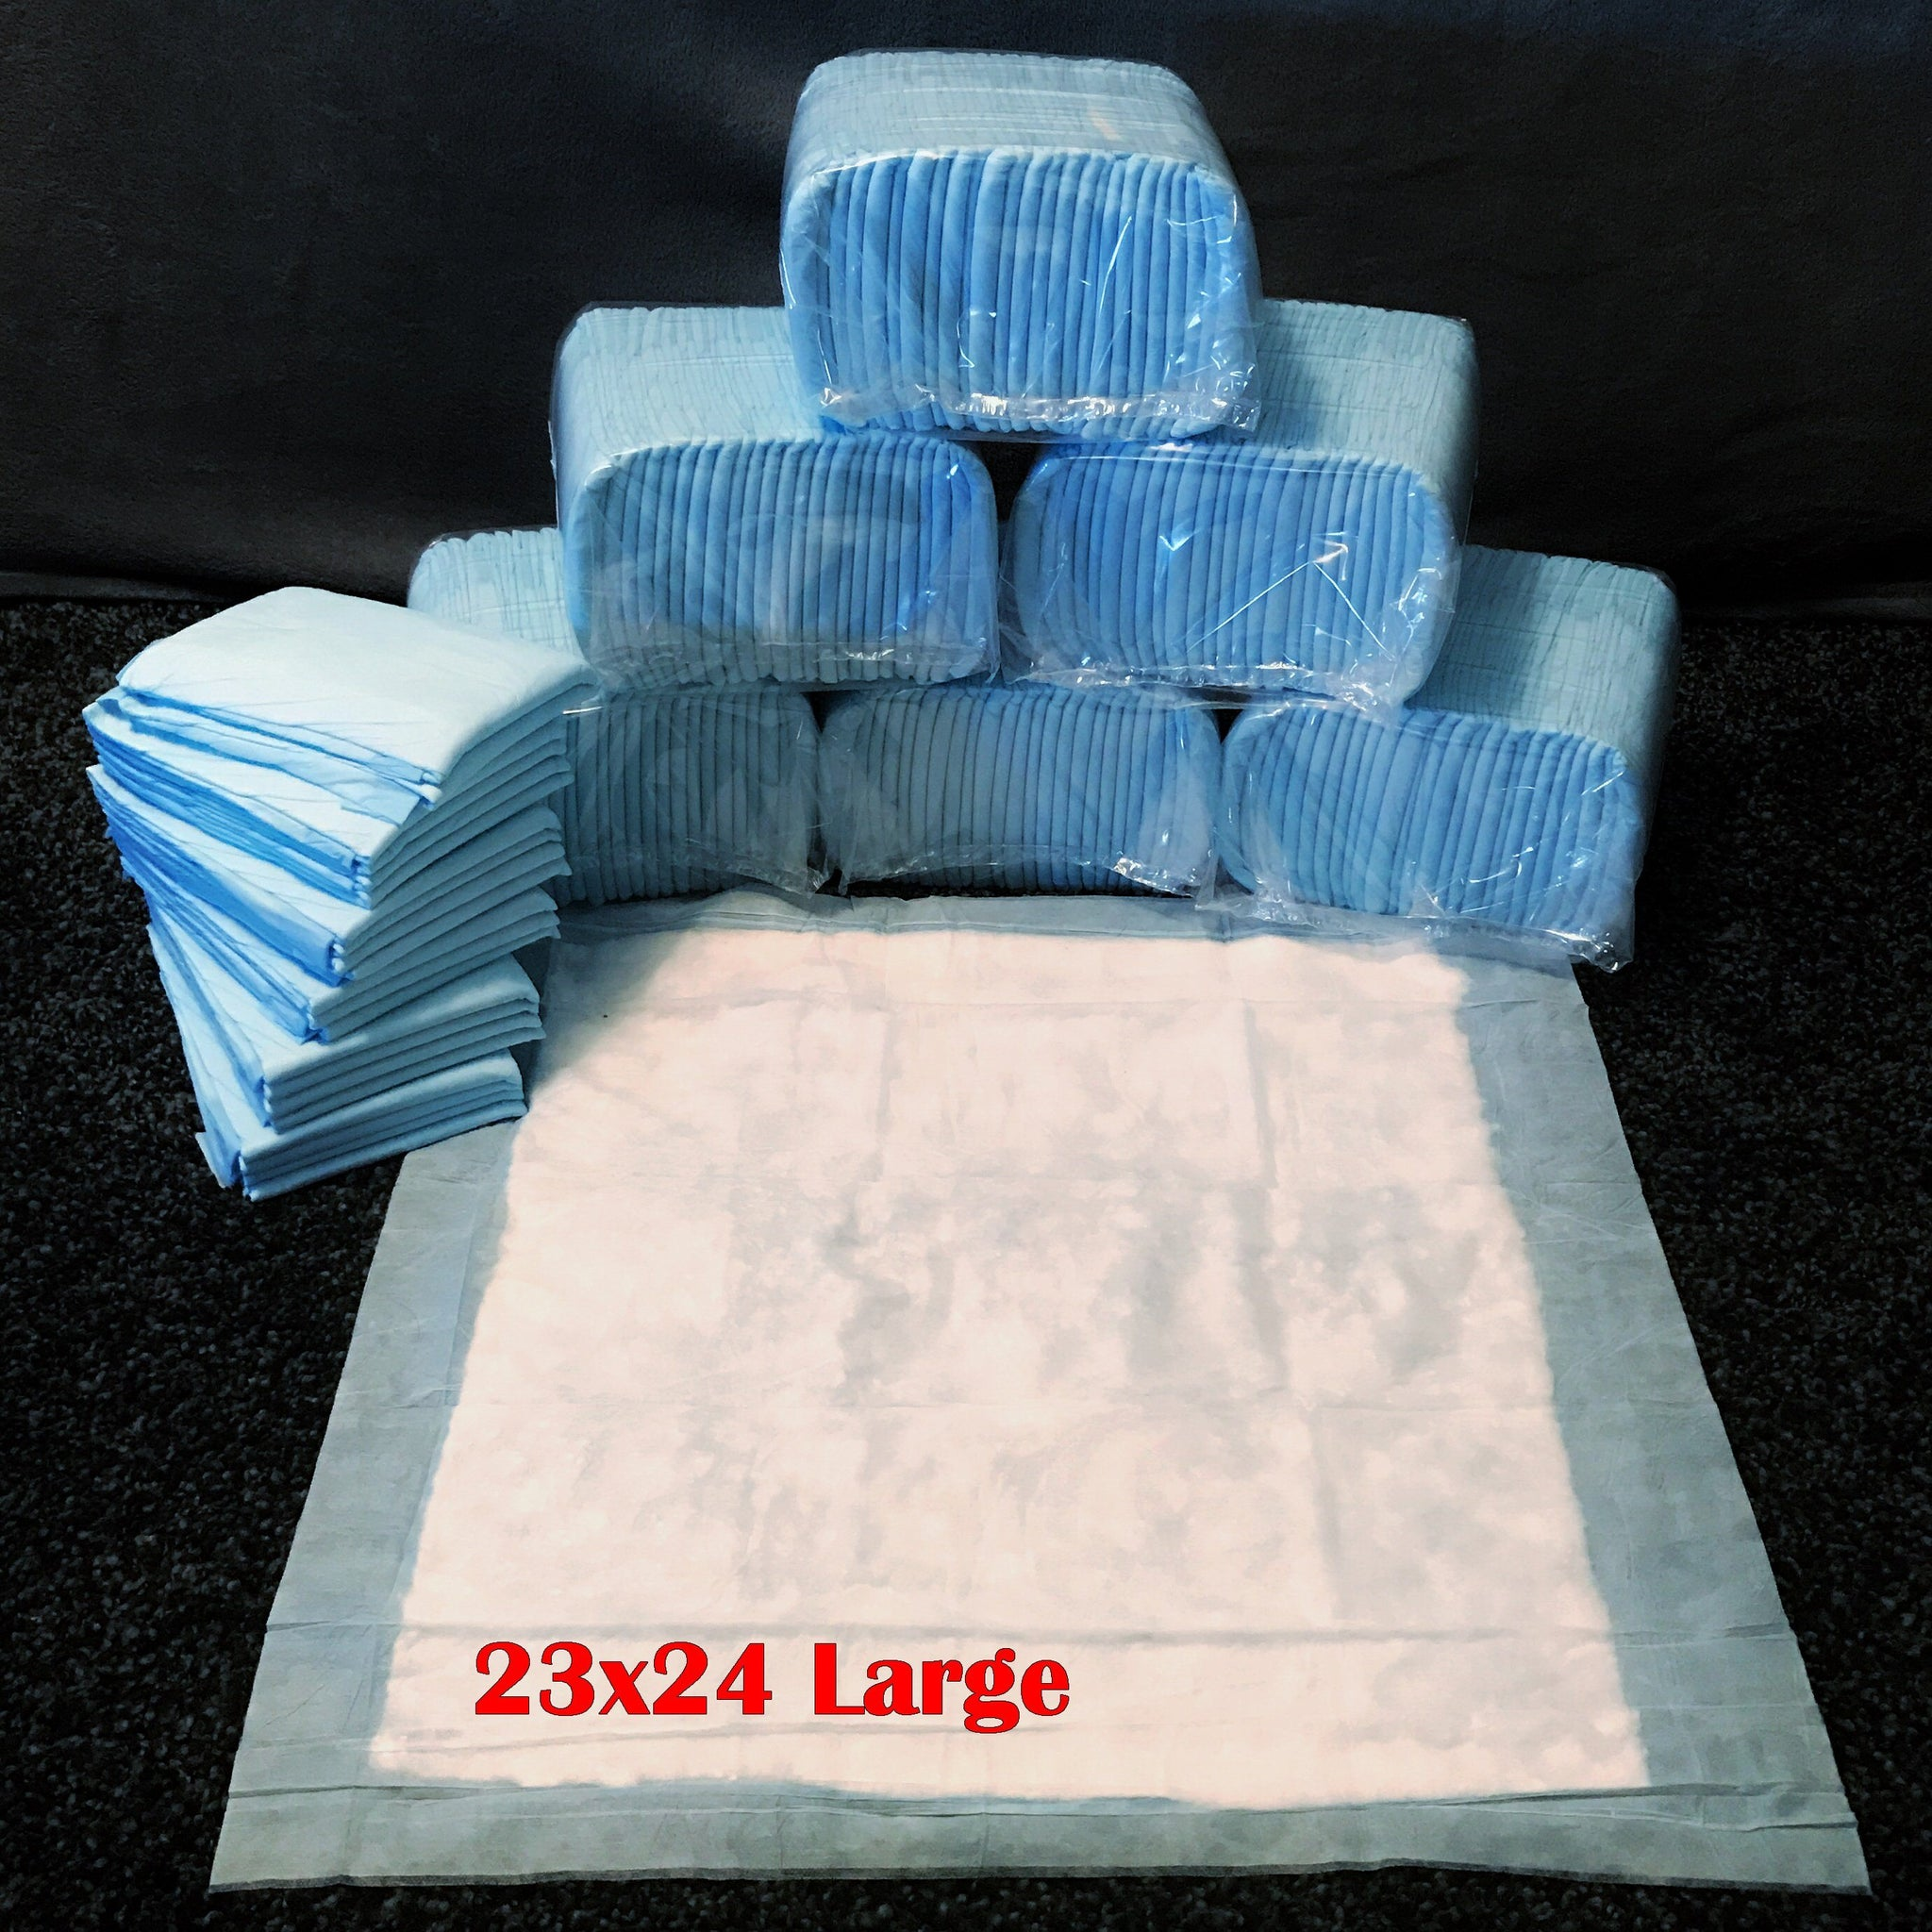 400 Large Size 23x24 In Pee Pads - Free Shipping $99.97 - $10 Savings For Bulk Discount - Pee-Pads.com